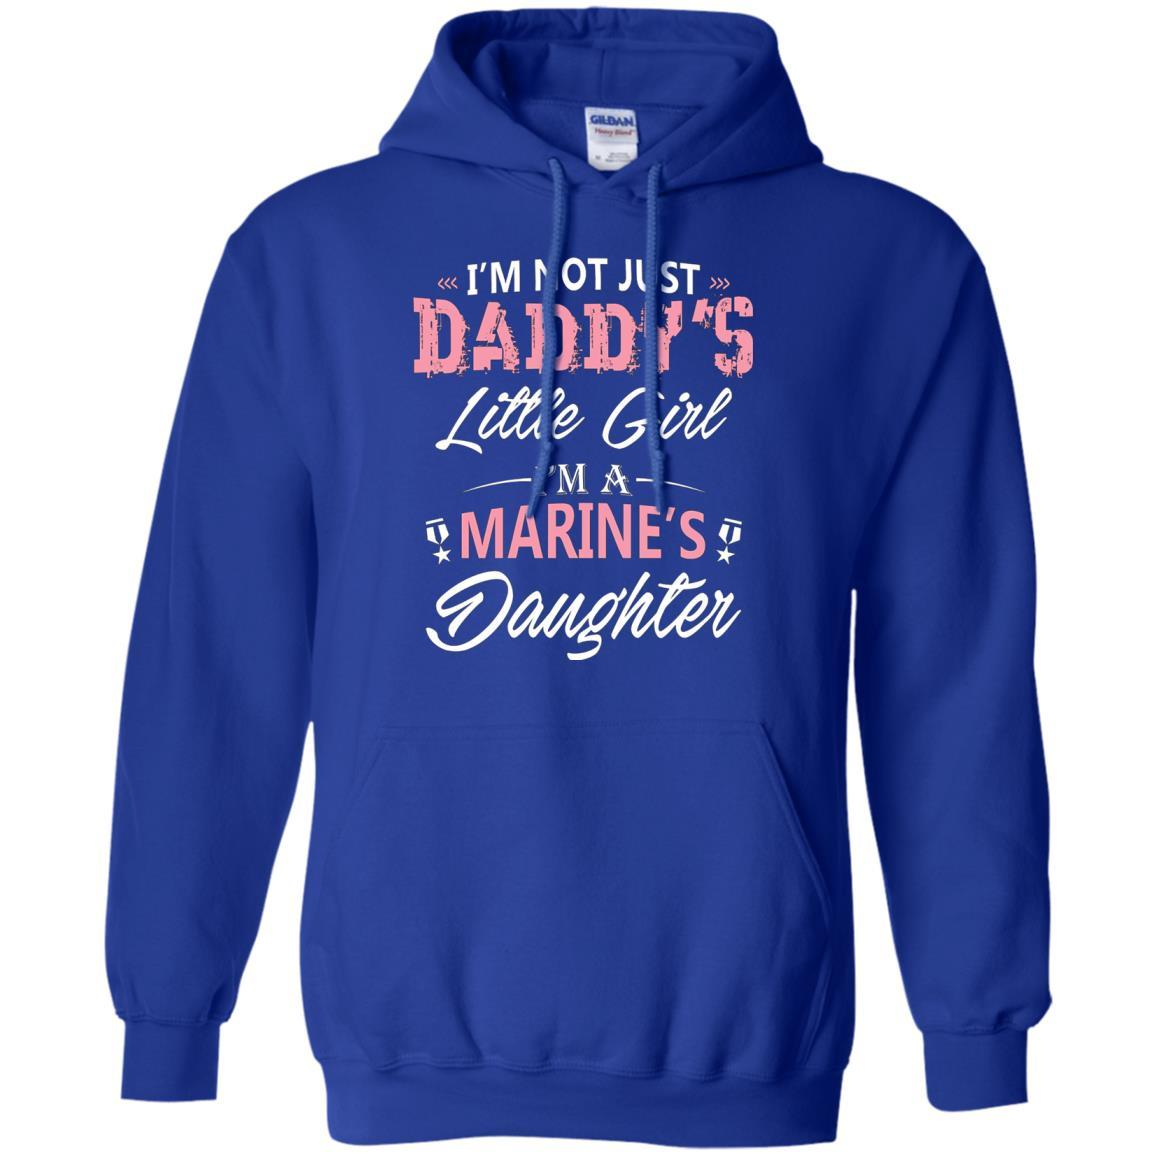 Not Just Daddy's Little Girl Marine's Daughter T-shirt